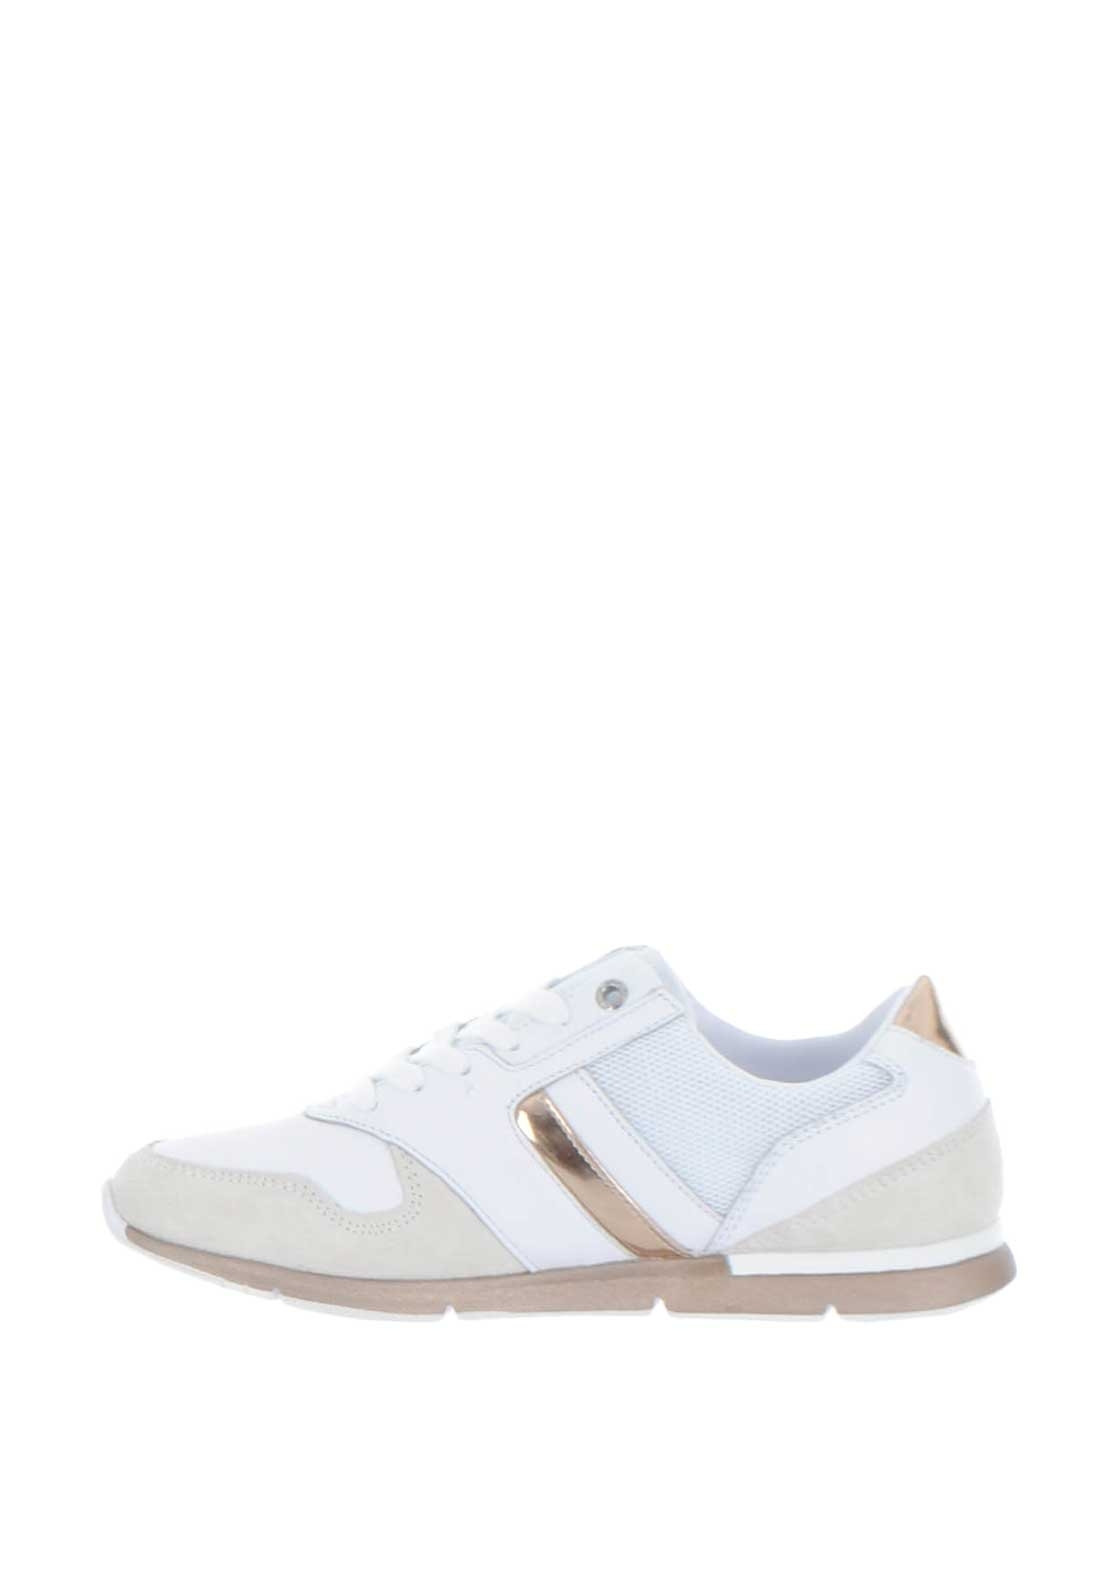 bc13c411b Tommy Hilfiger Womens Iridescent Light Trainers, Rose Gold. Be the first to  review this product